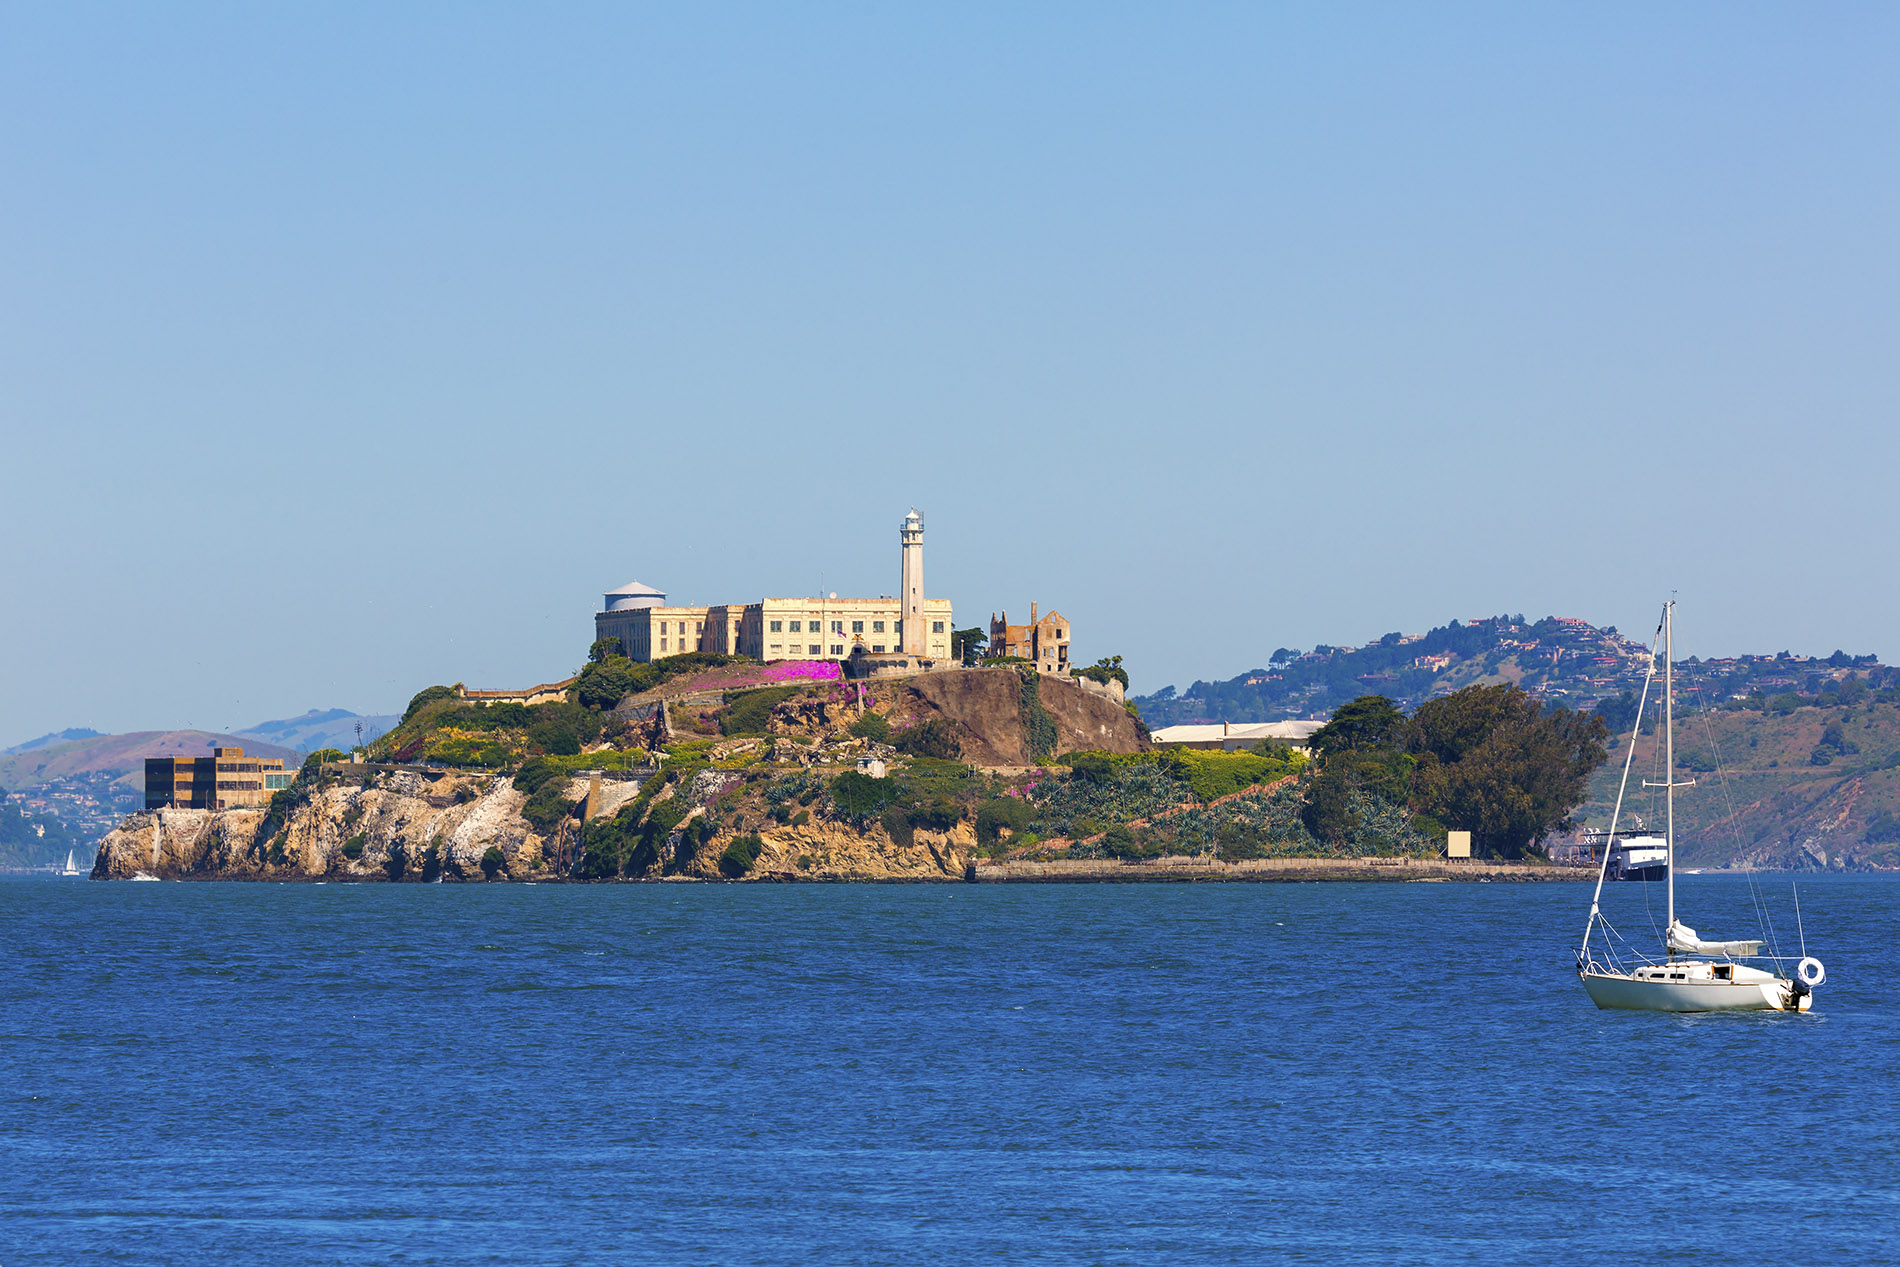 a small boat in a body of water with Alcatraz Island in the background